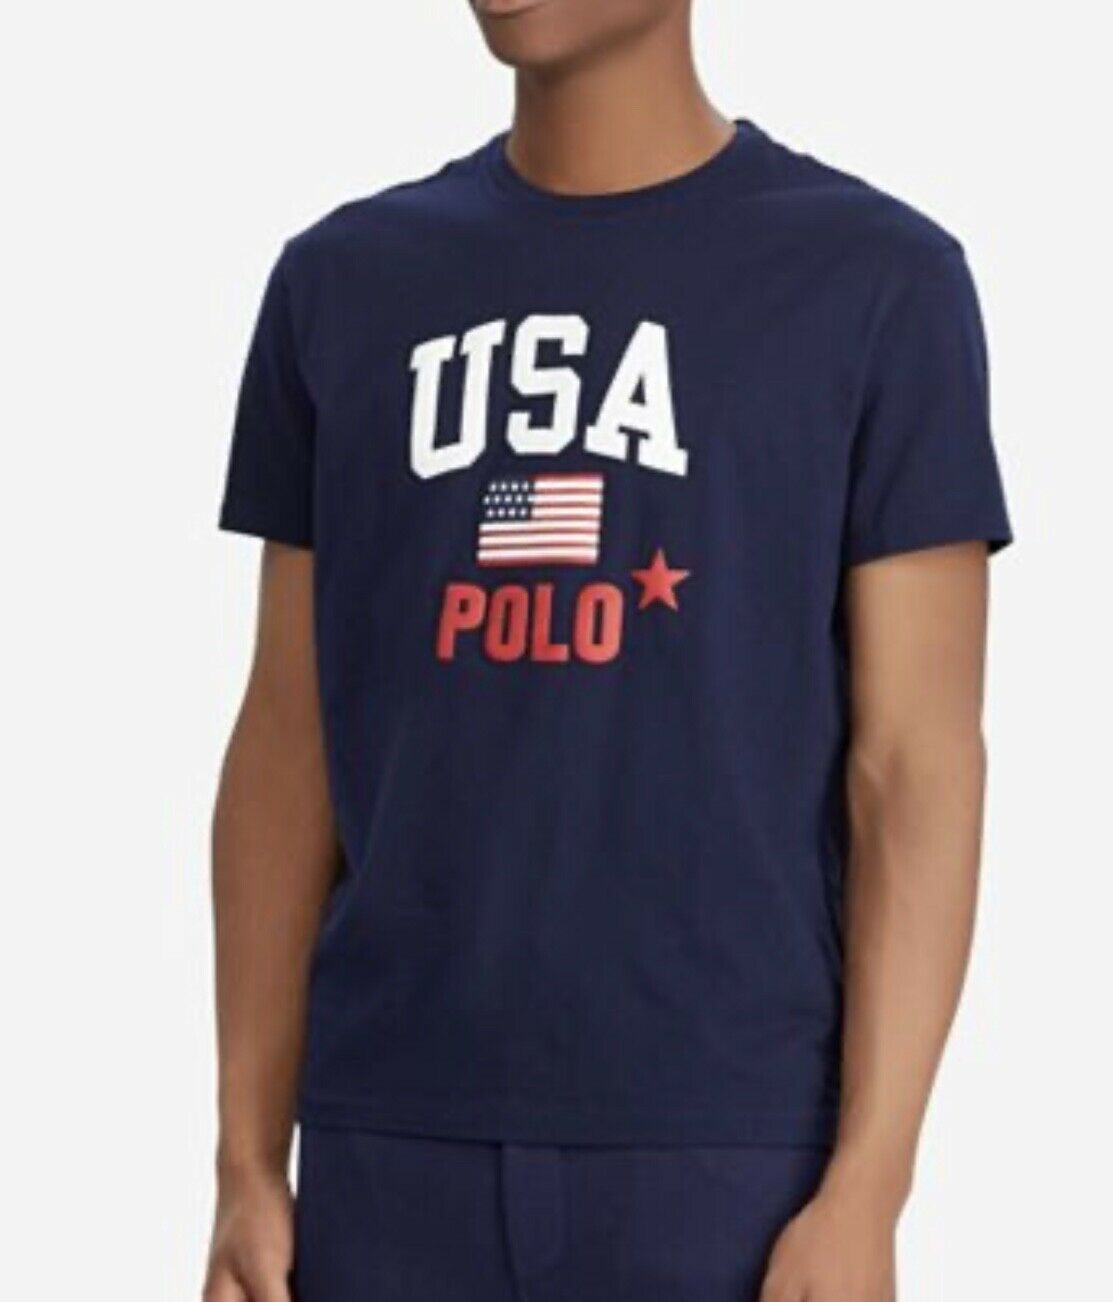 Primary image for Polo Ralph Lauren Mens US American Flag T-shirt Tee top USA 2XLT NWT